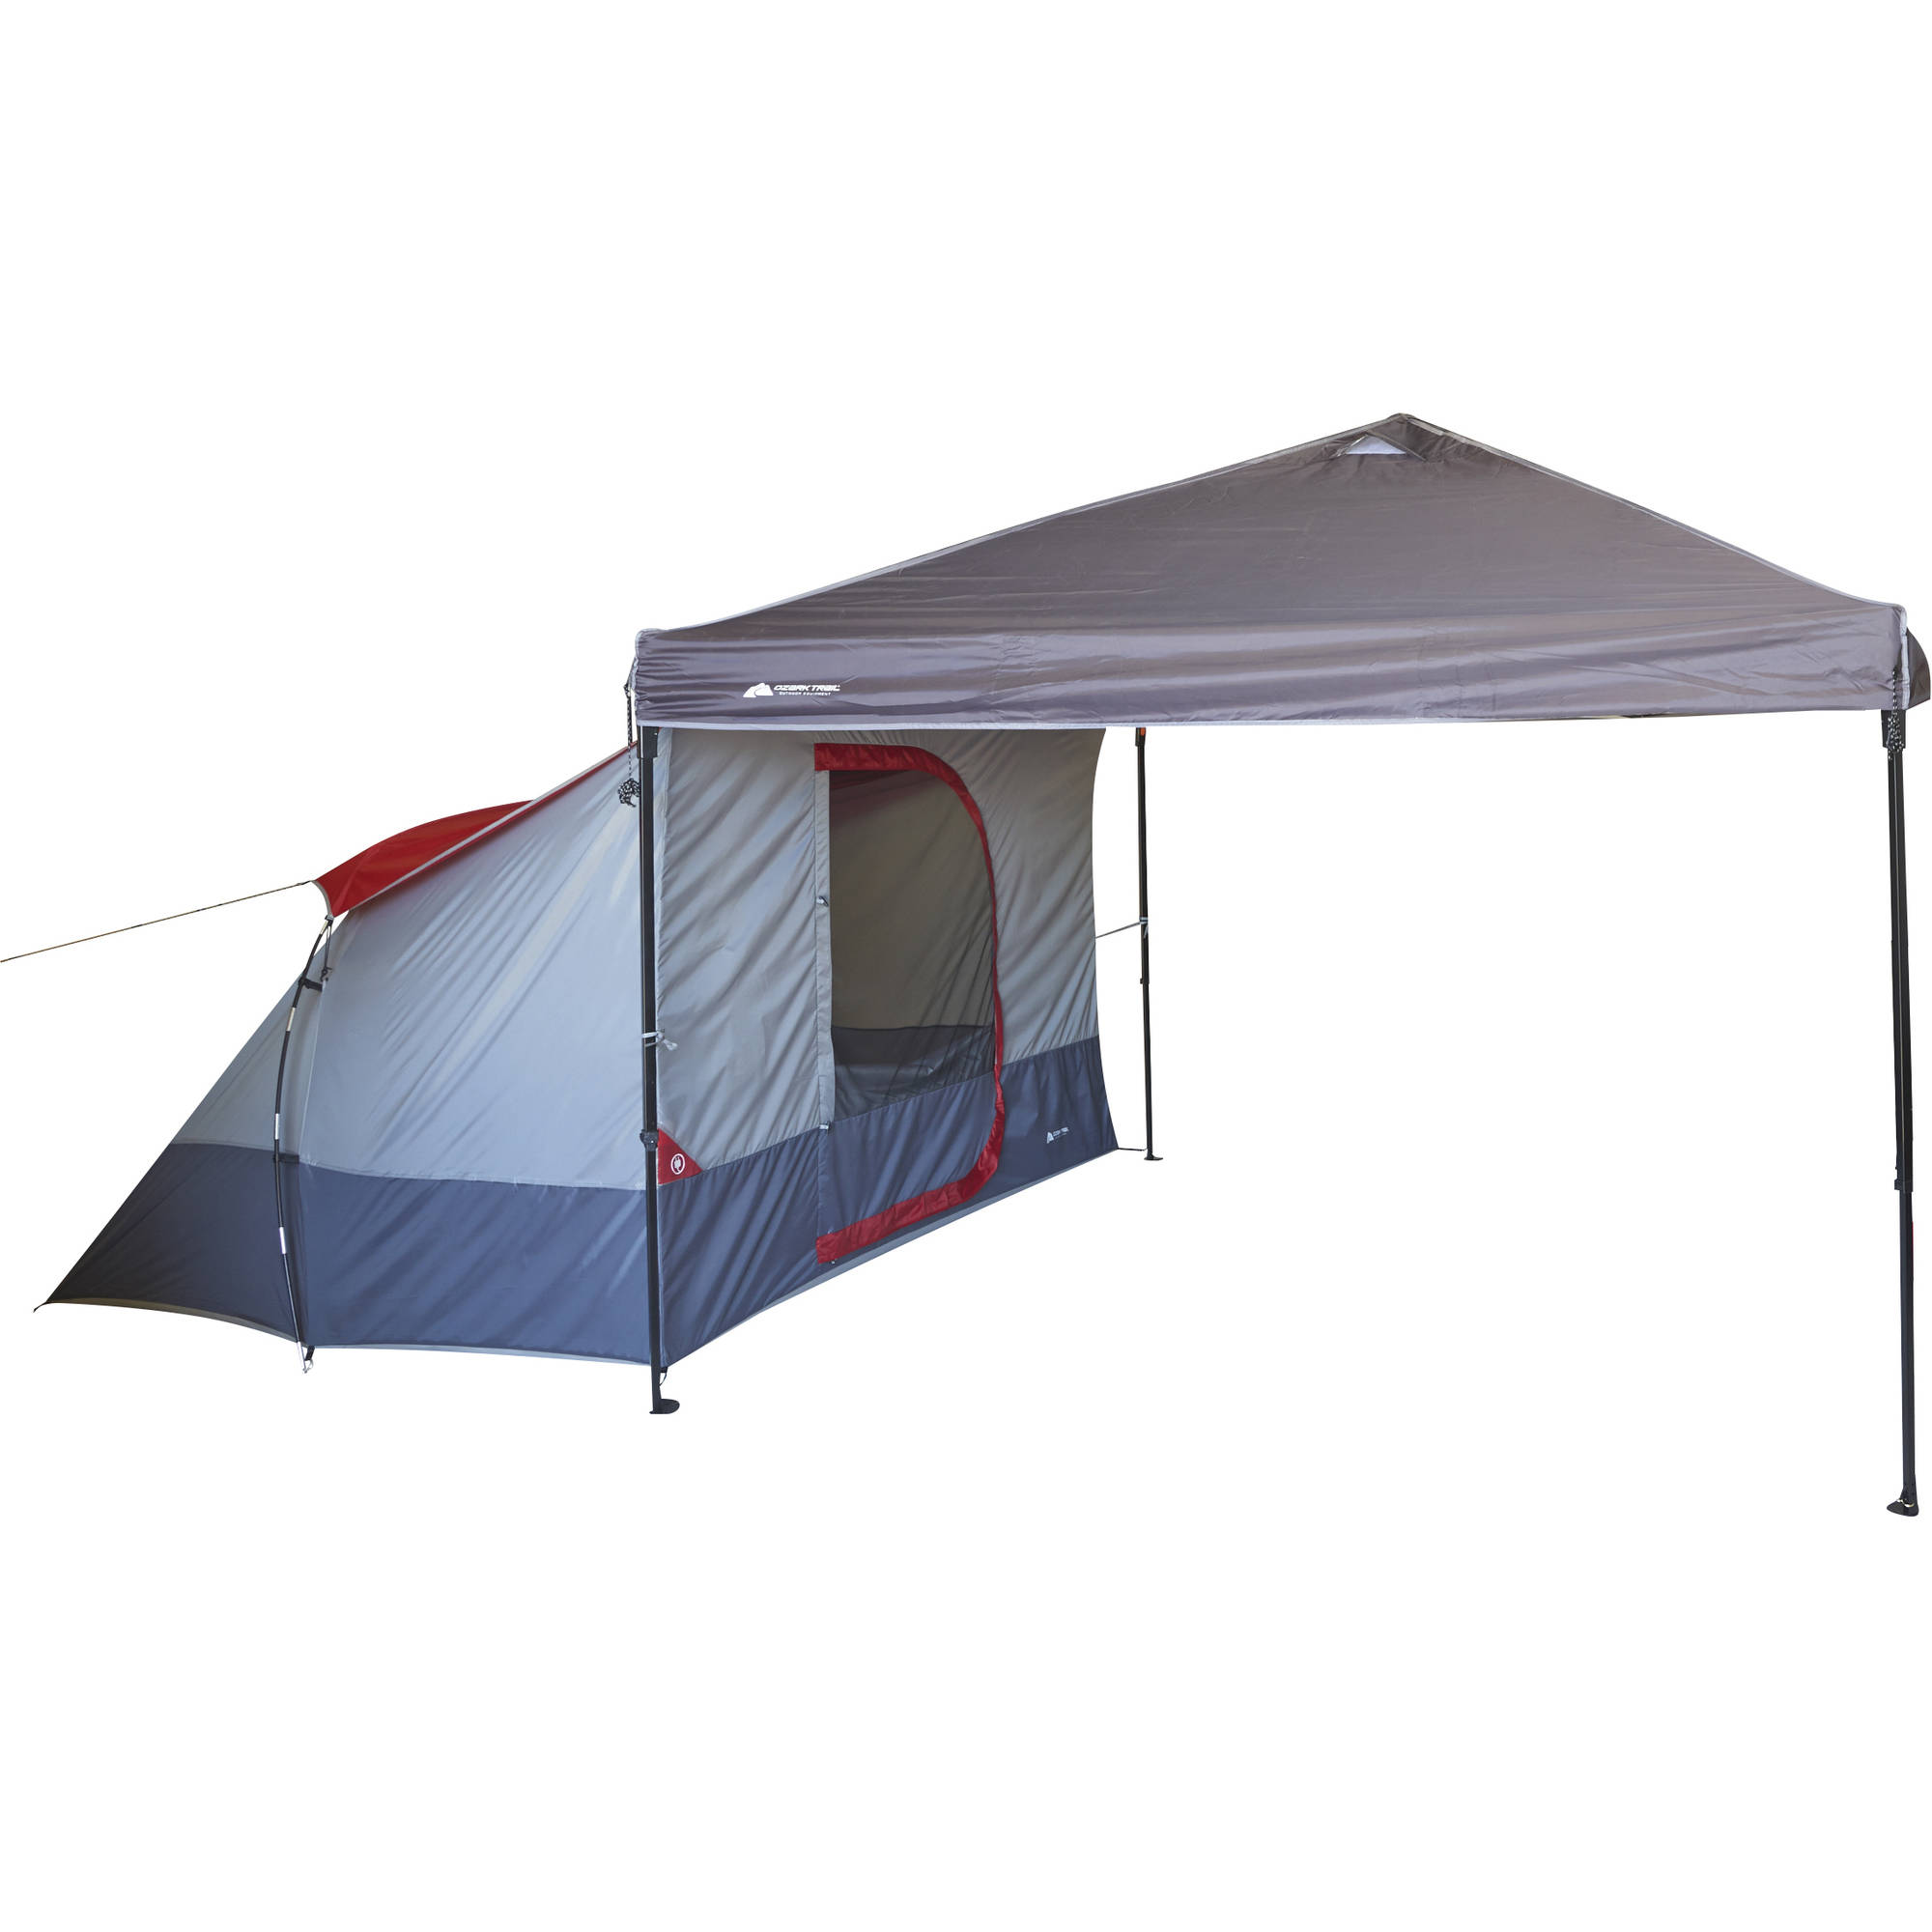 Ozark Trail 4-Person ConnecTent for Canopy  sc 1 st  Walmart : portable canopy tent walmart - memphite.com